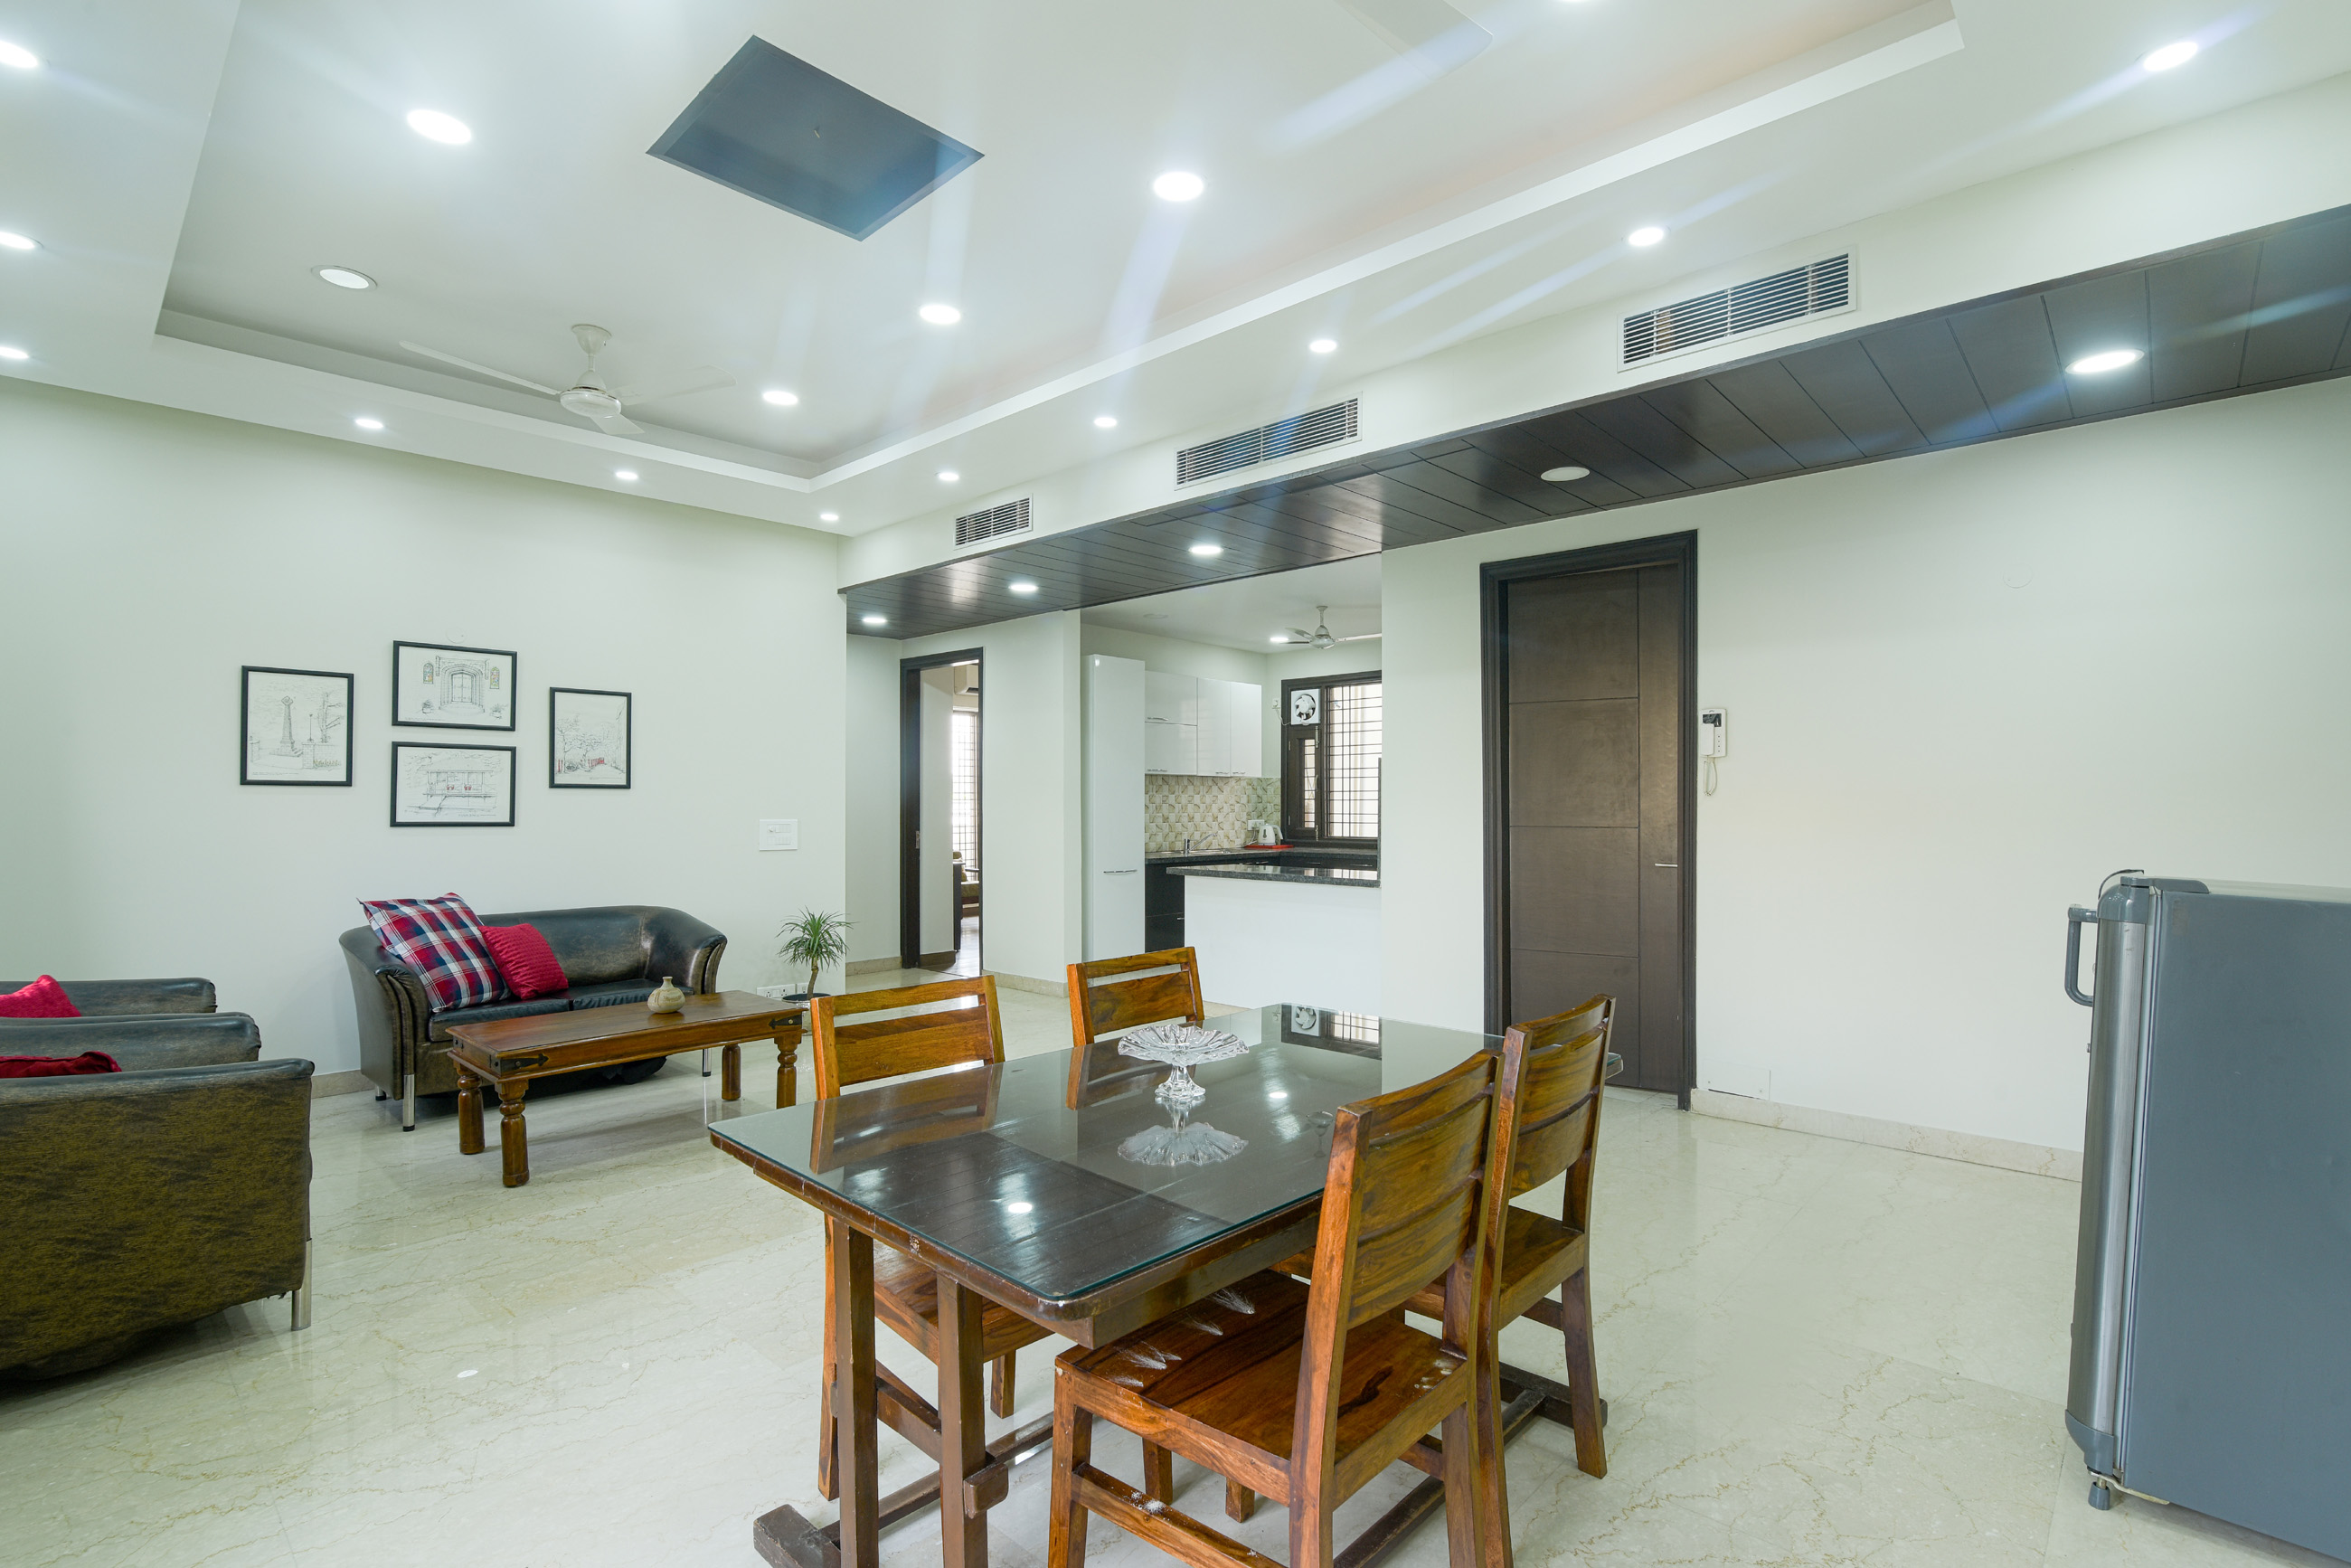 3 BHK - Dining area